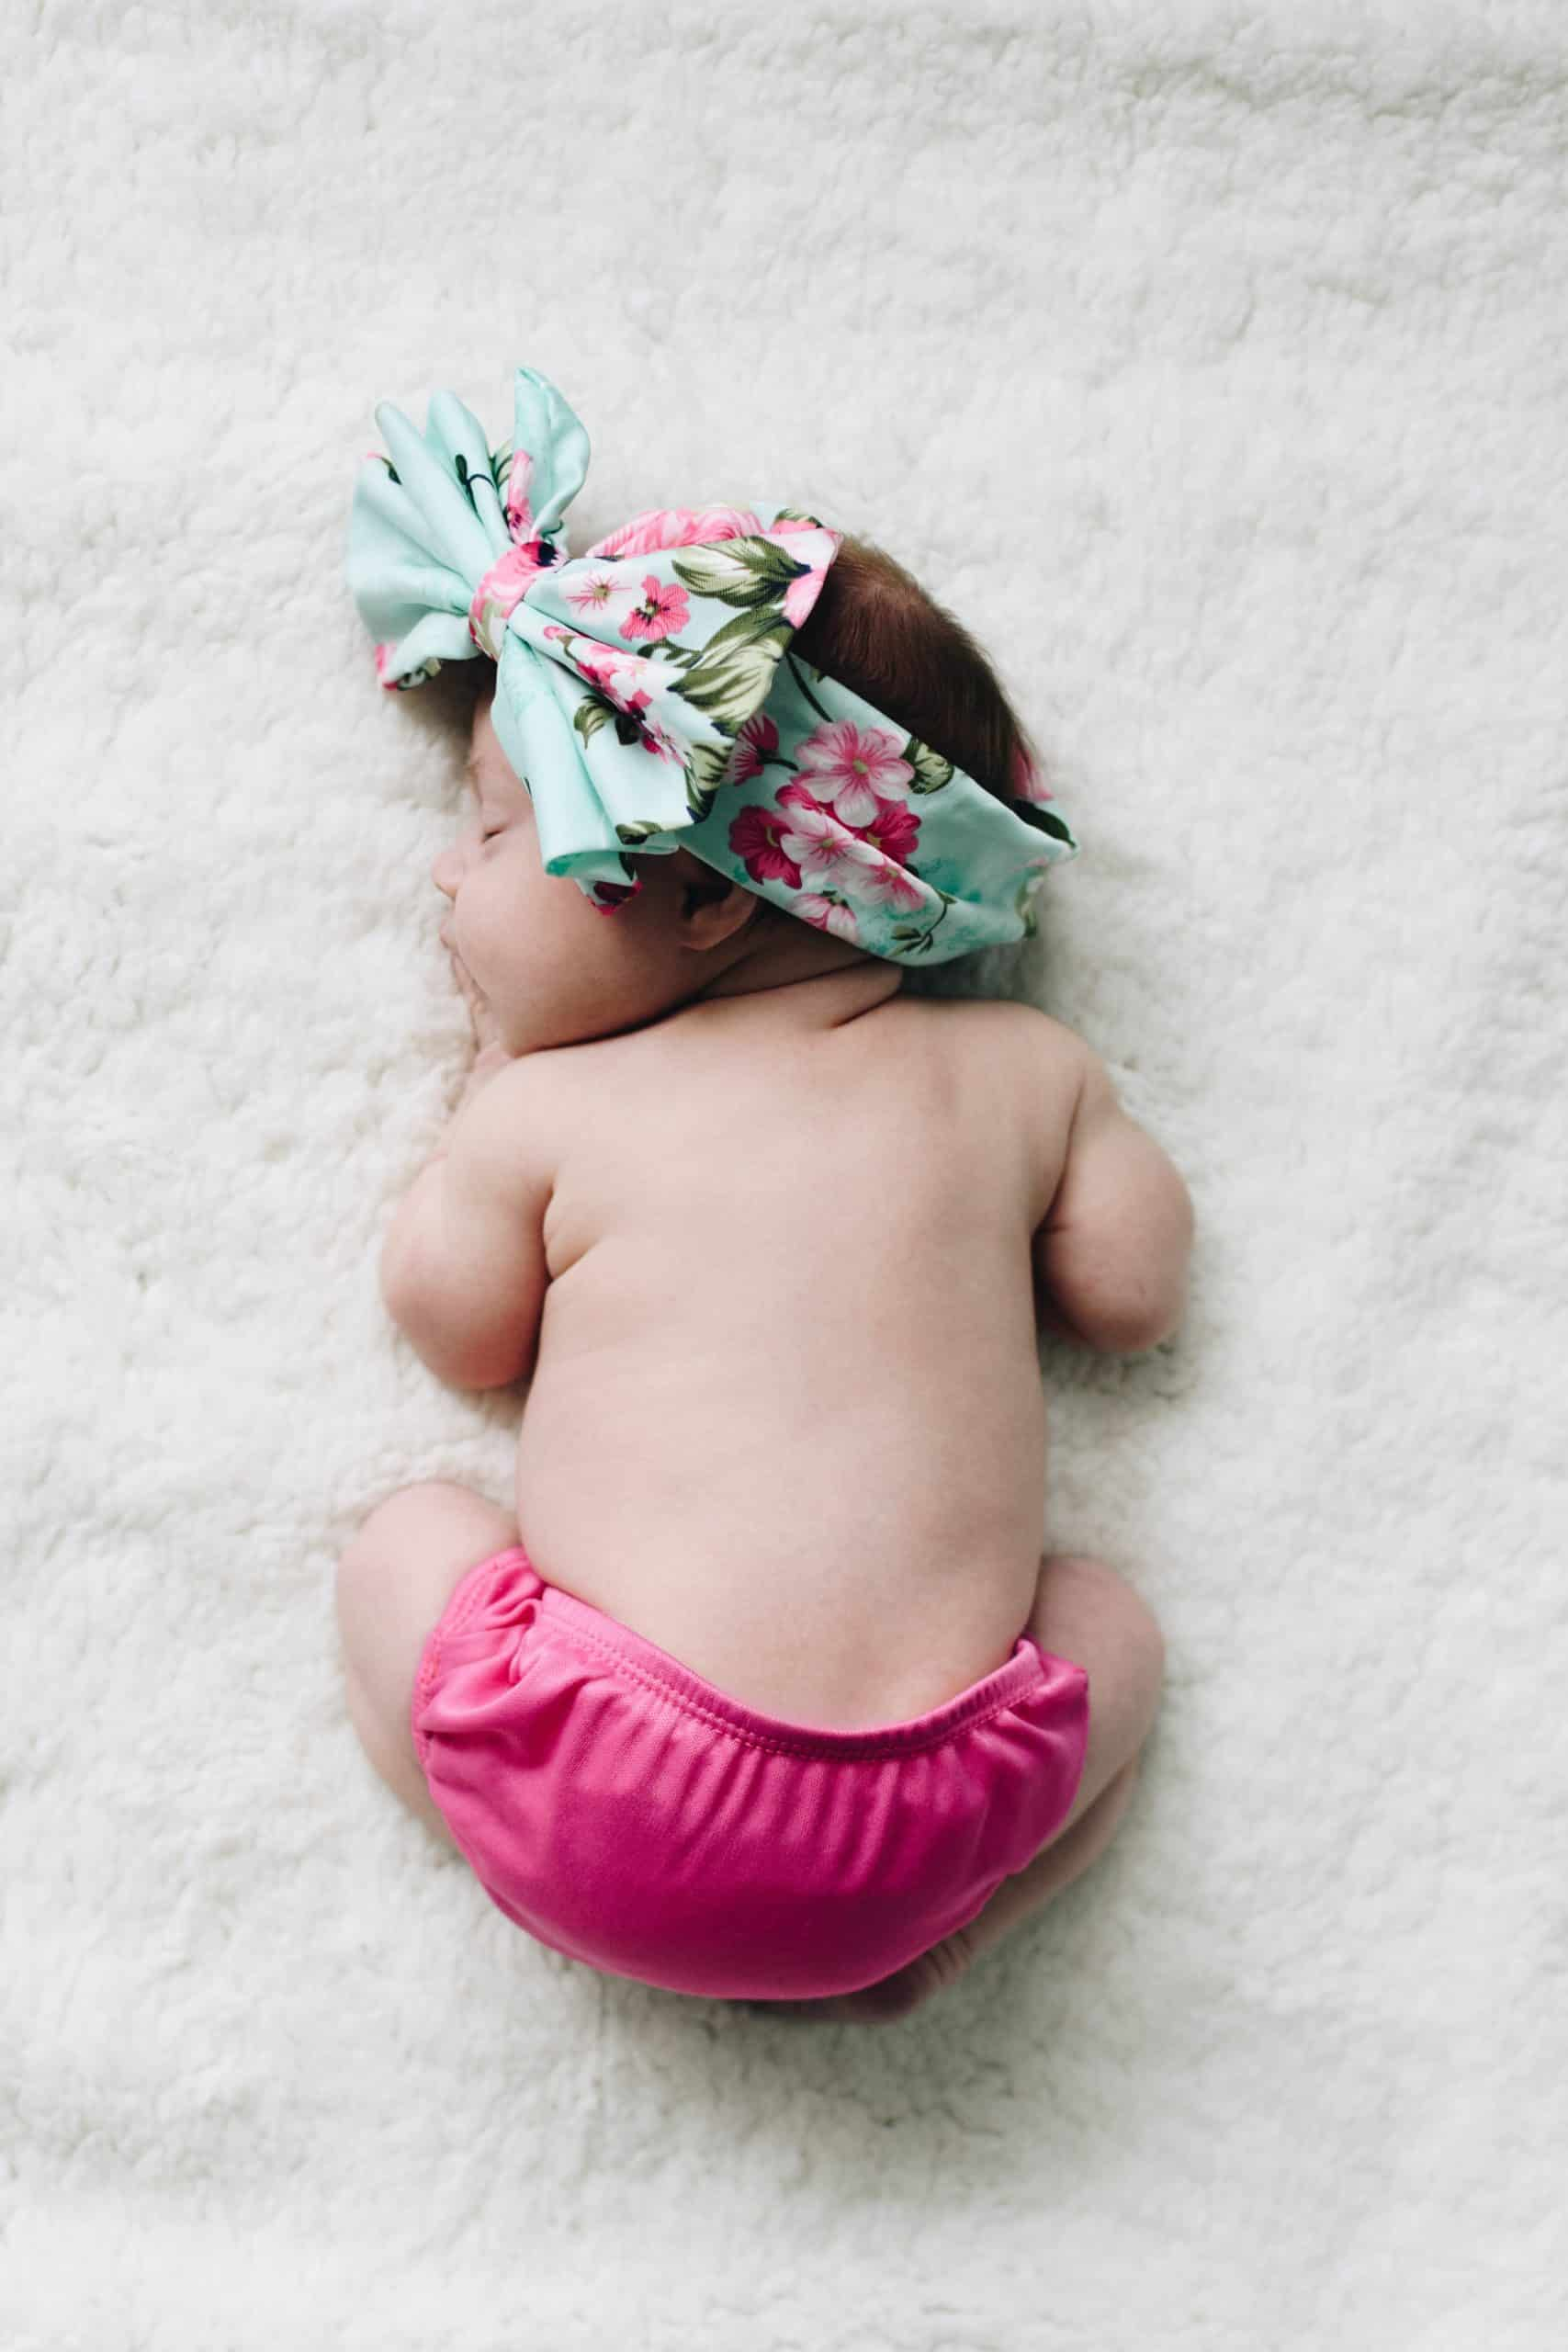 Looking For The Best Baby Gifts?